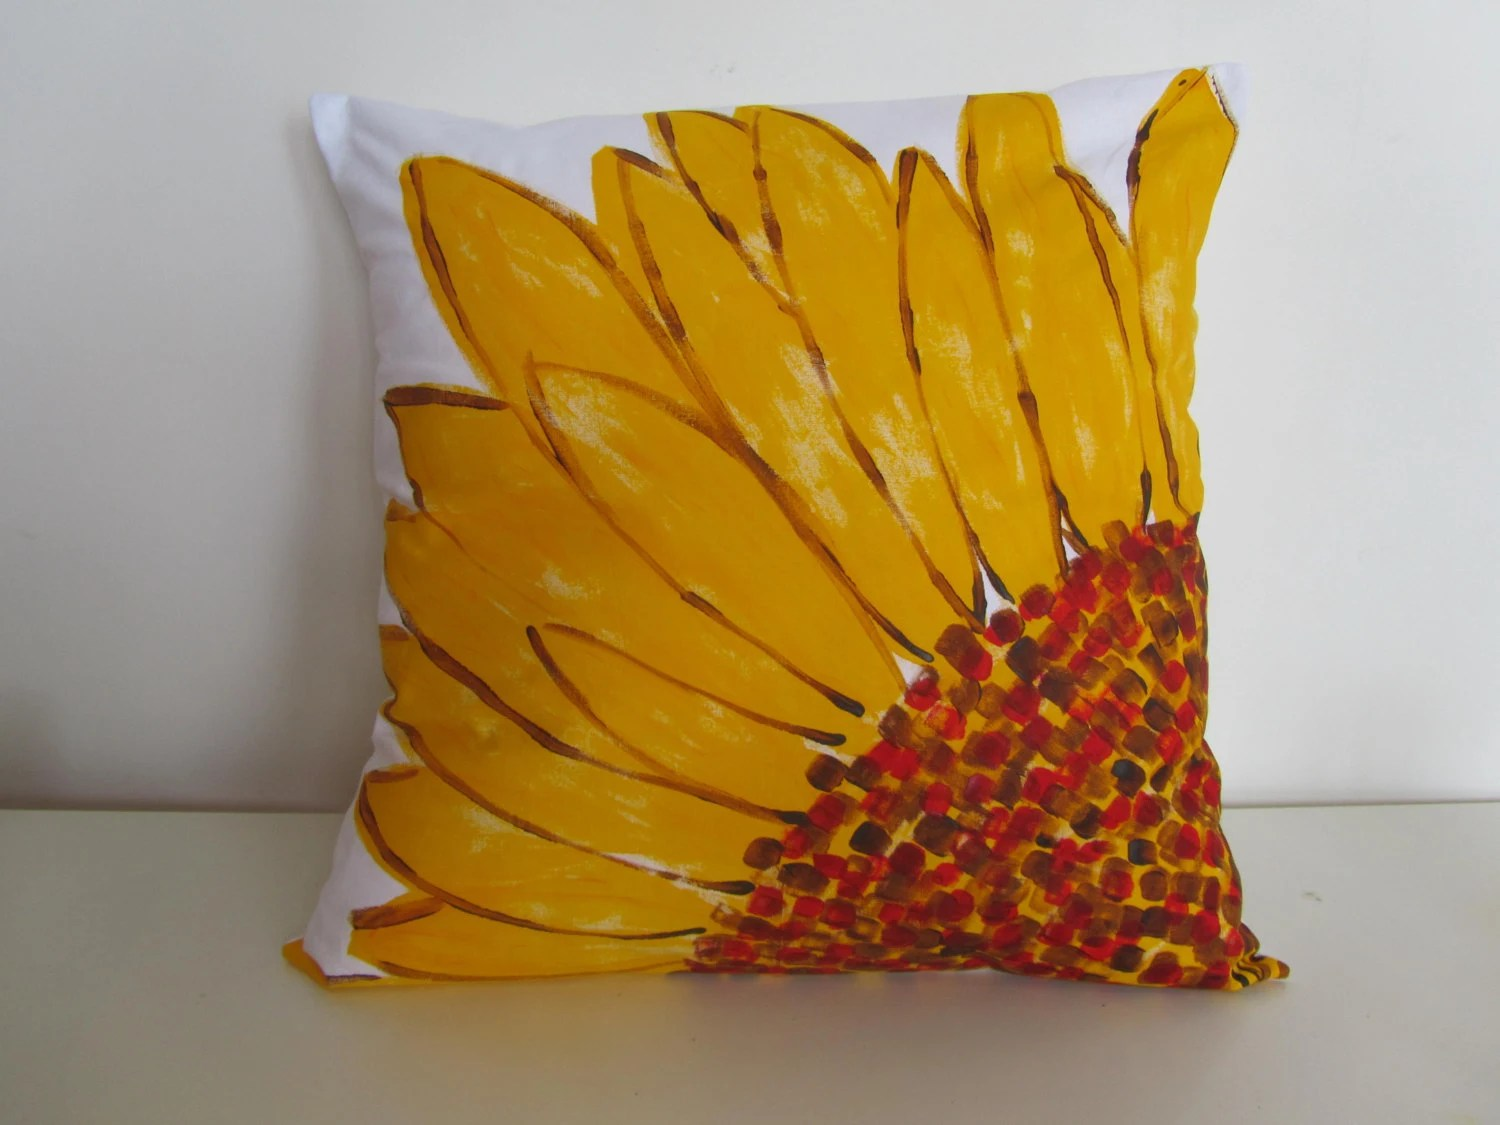 Hand painted bright yellow gerbera flower floral one decorative throw pillow cover cushion 18 inch - CreativelyCouture